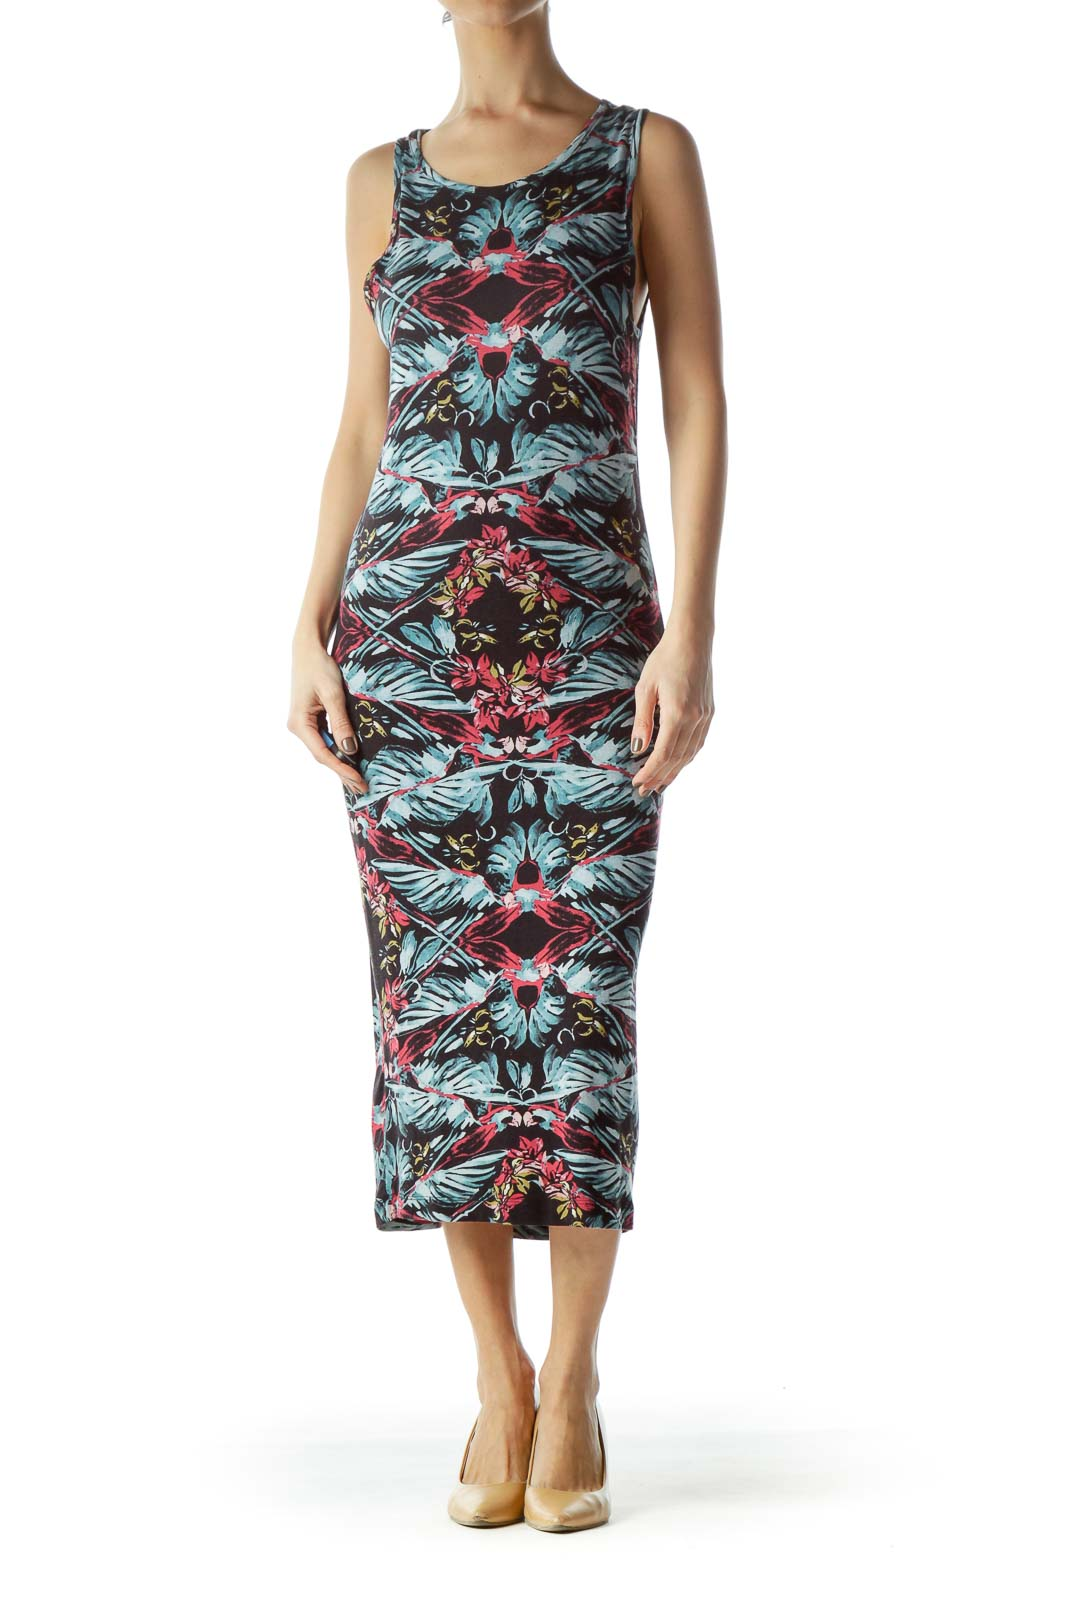 Multicolored Jersey-Knit Floral Print Day Dress Front